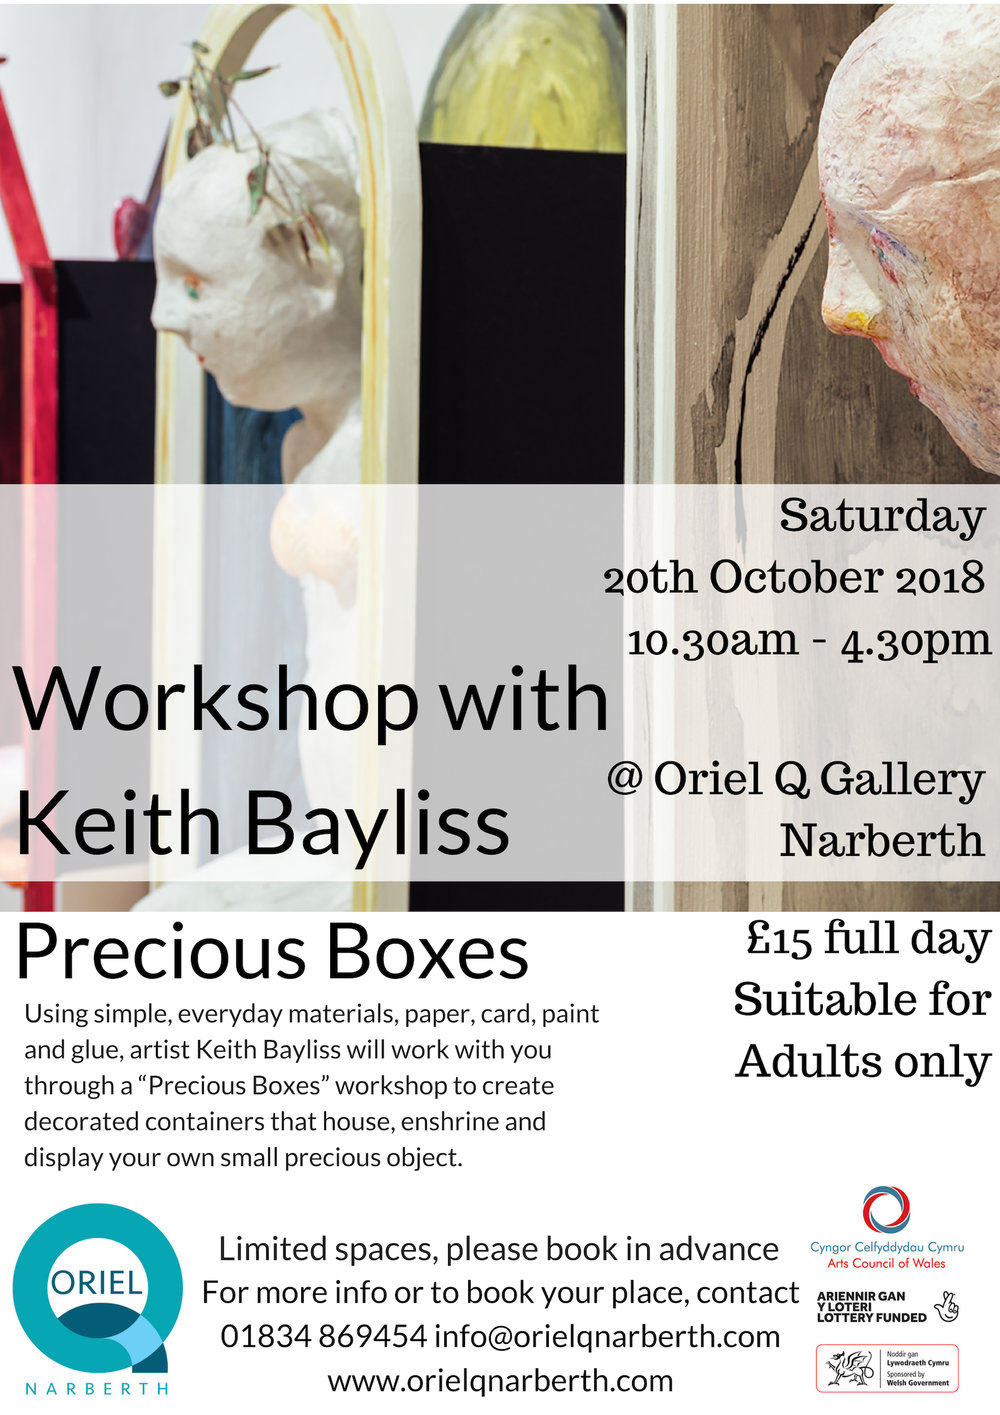 keith b poster workshop.jpg